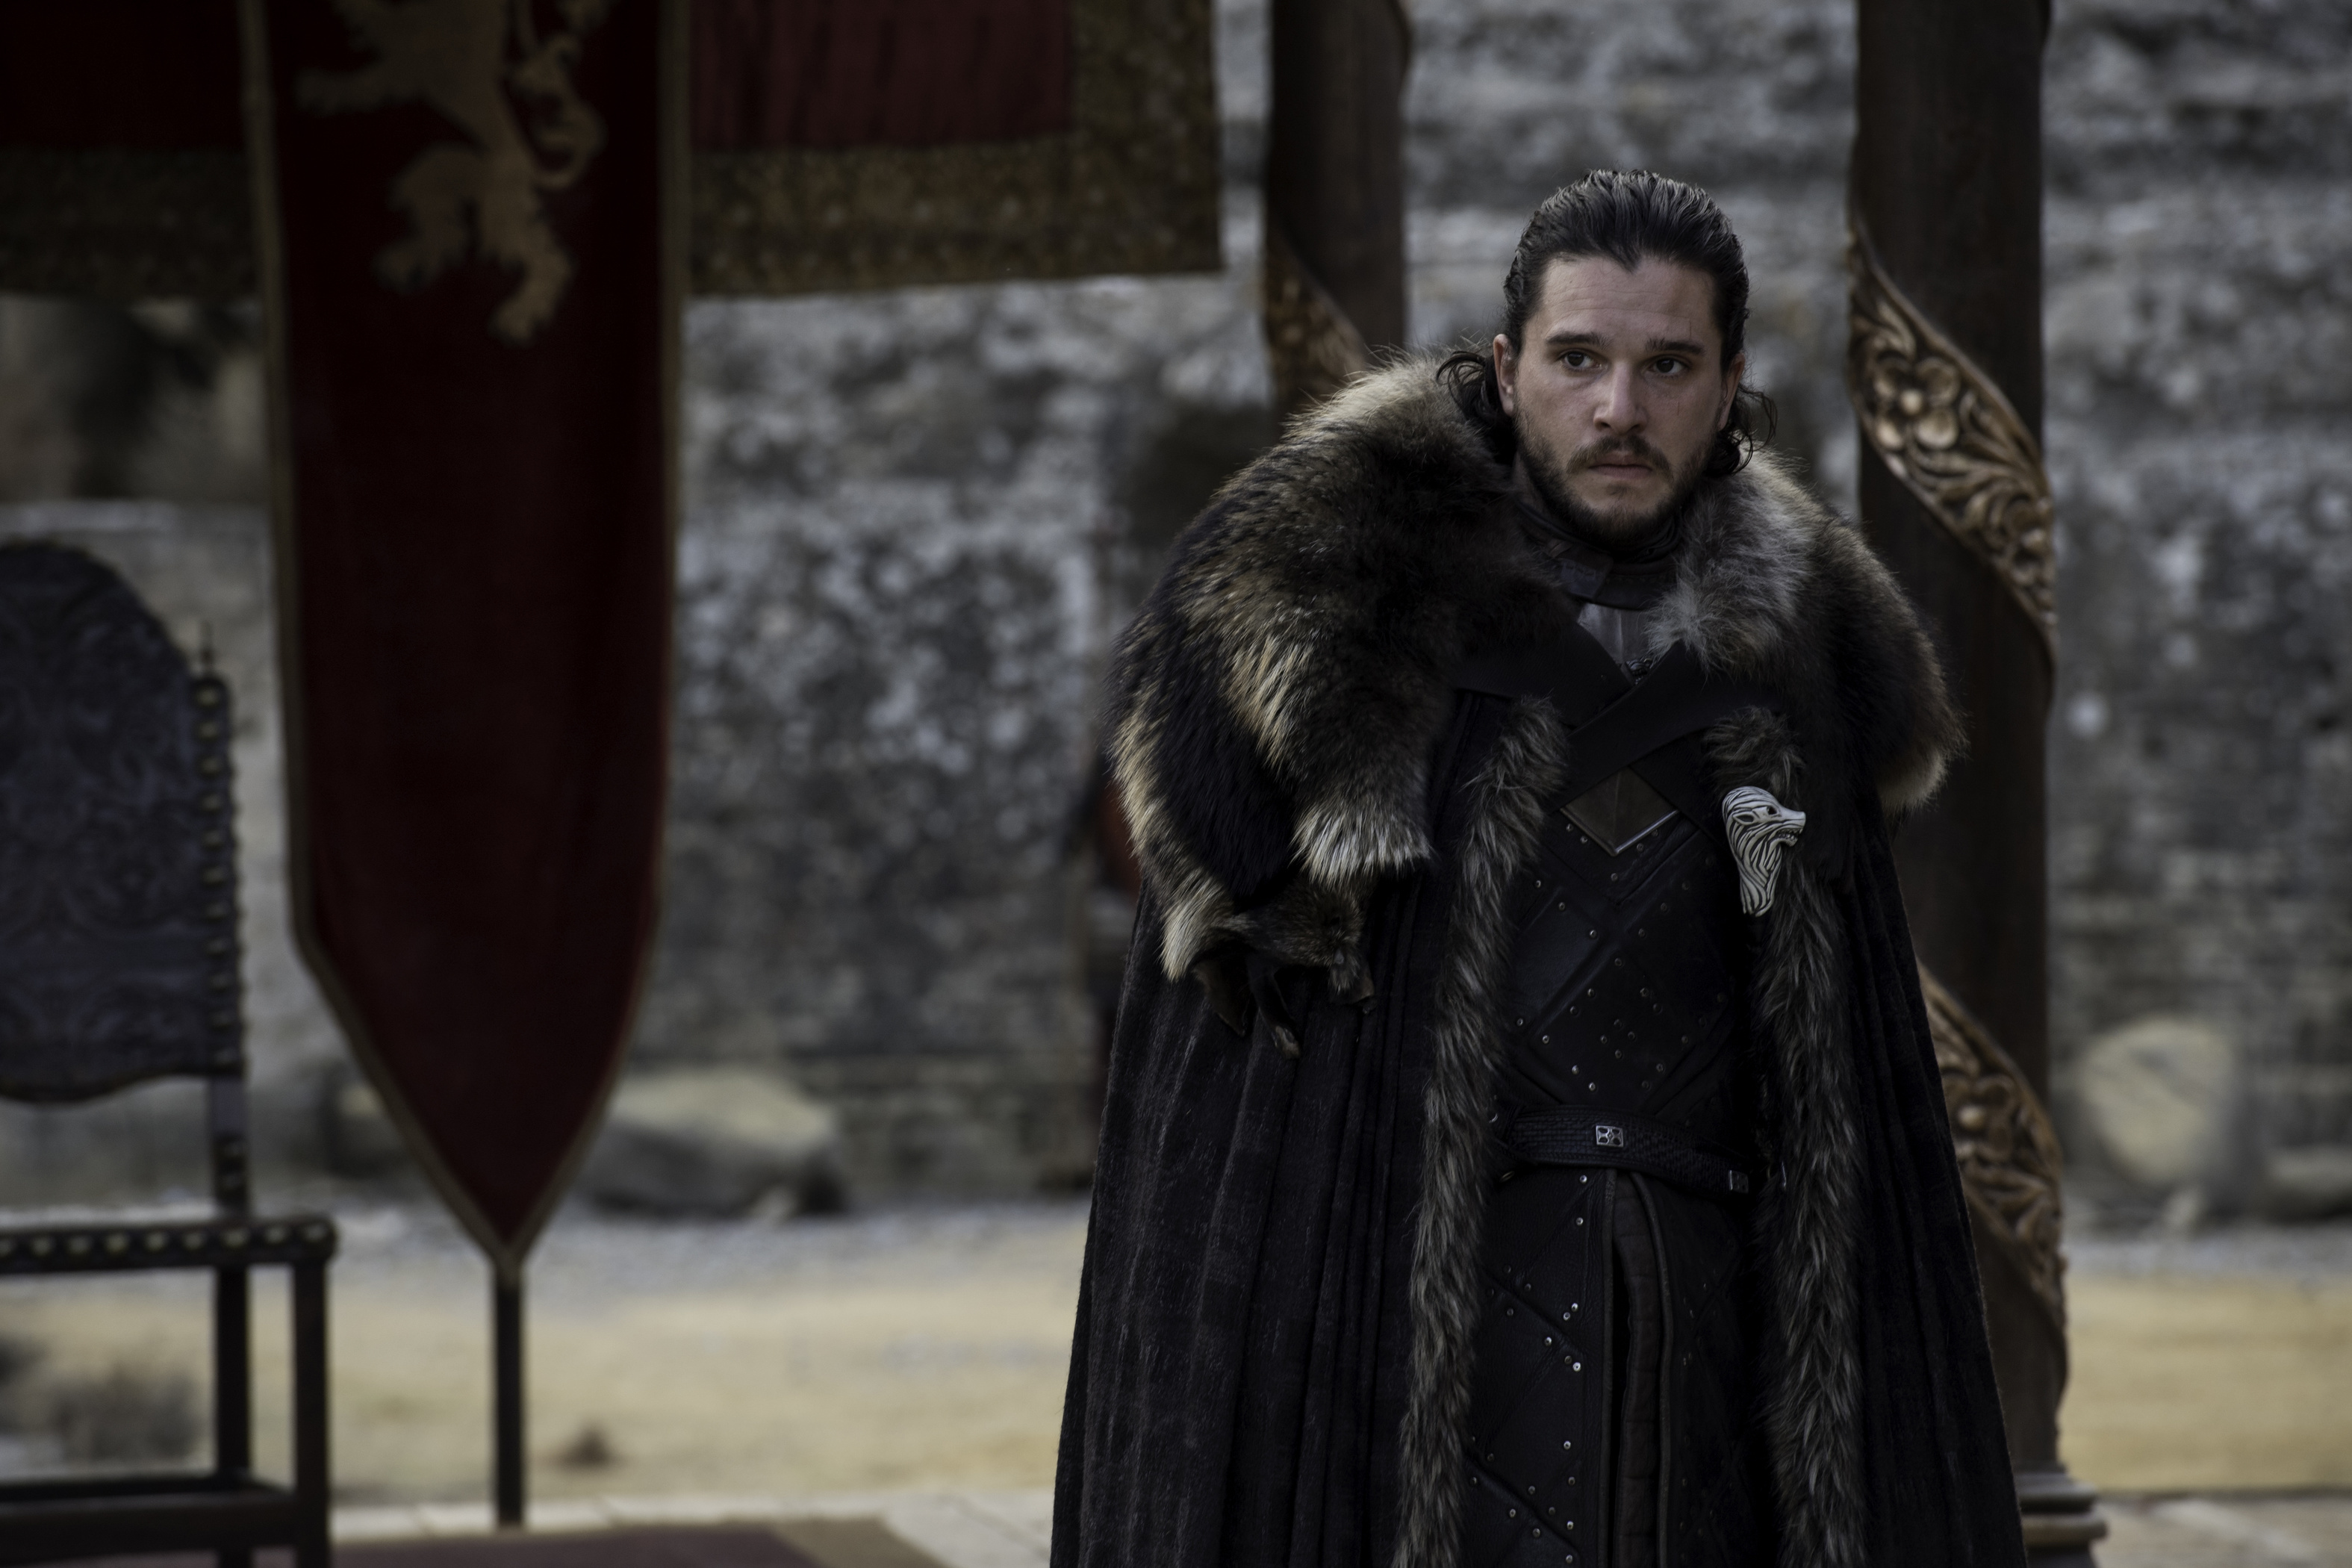 The Game Of Game Of Thrones Season 7 Episode 7 The Dragon And The